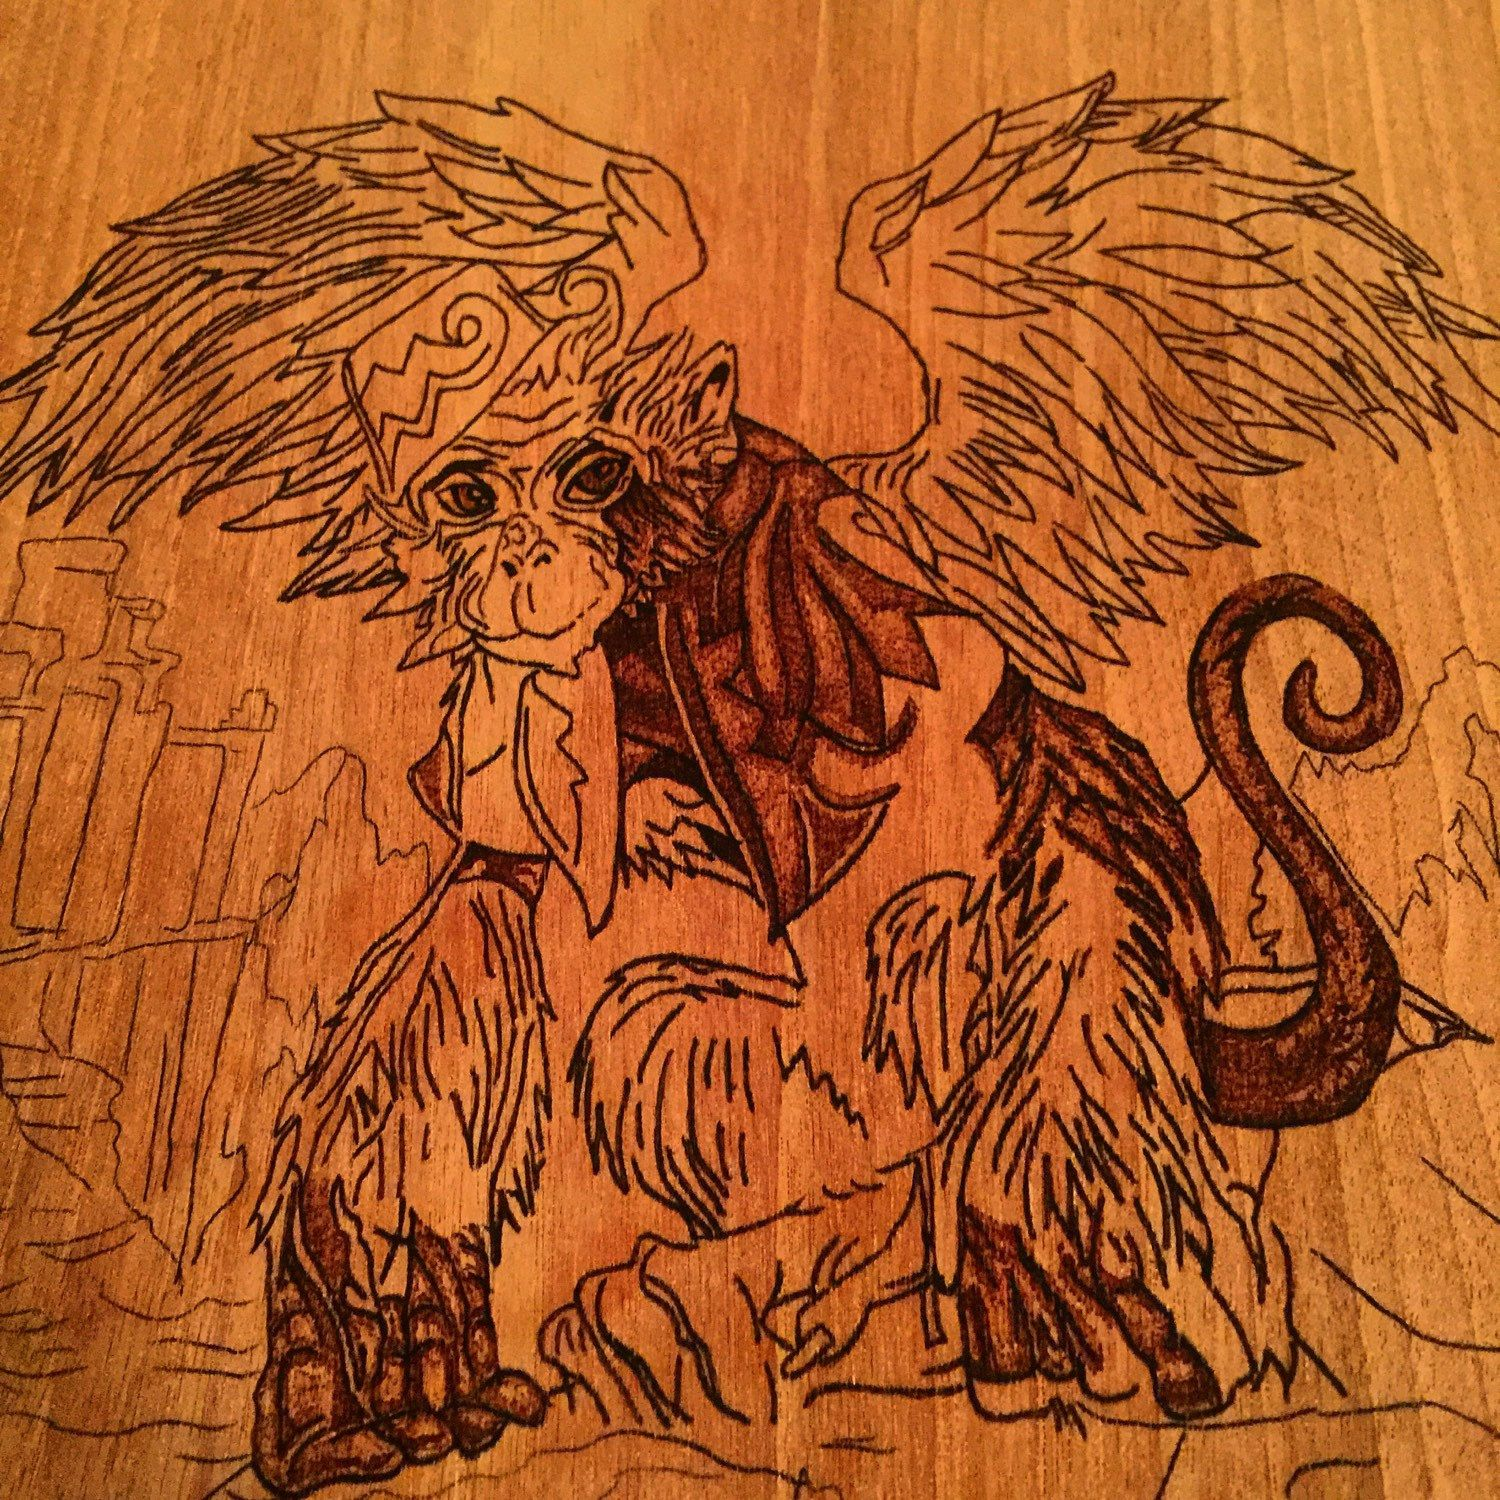 One of our woodburning art pieces in the works